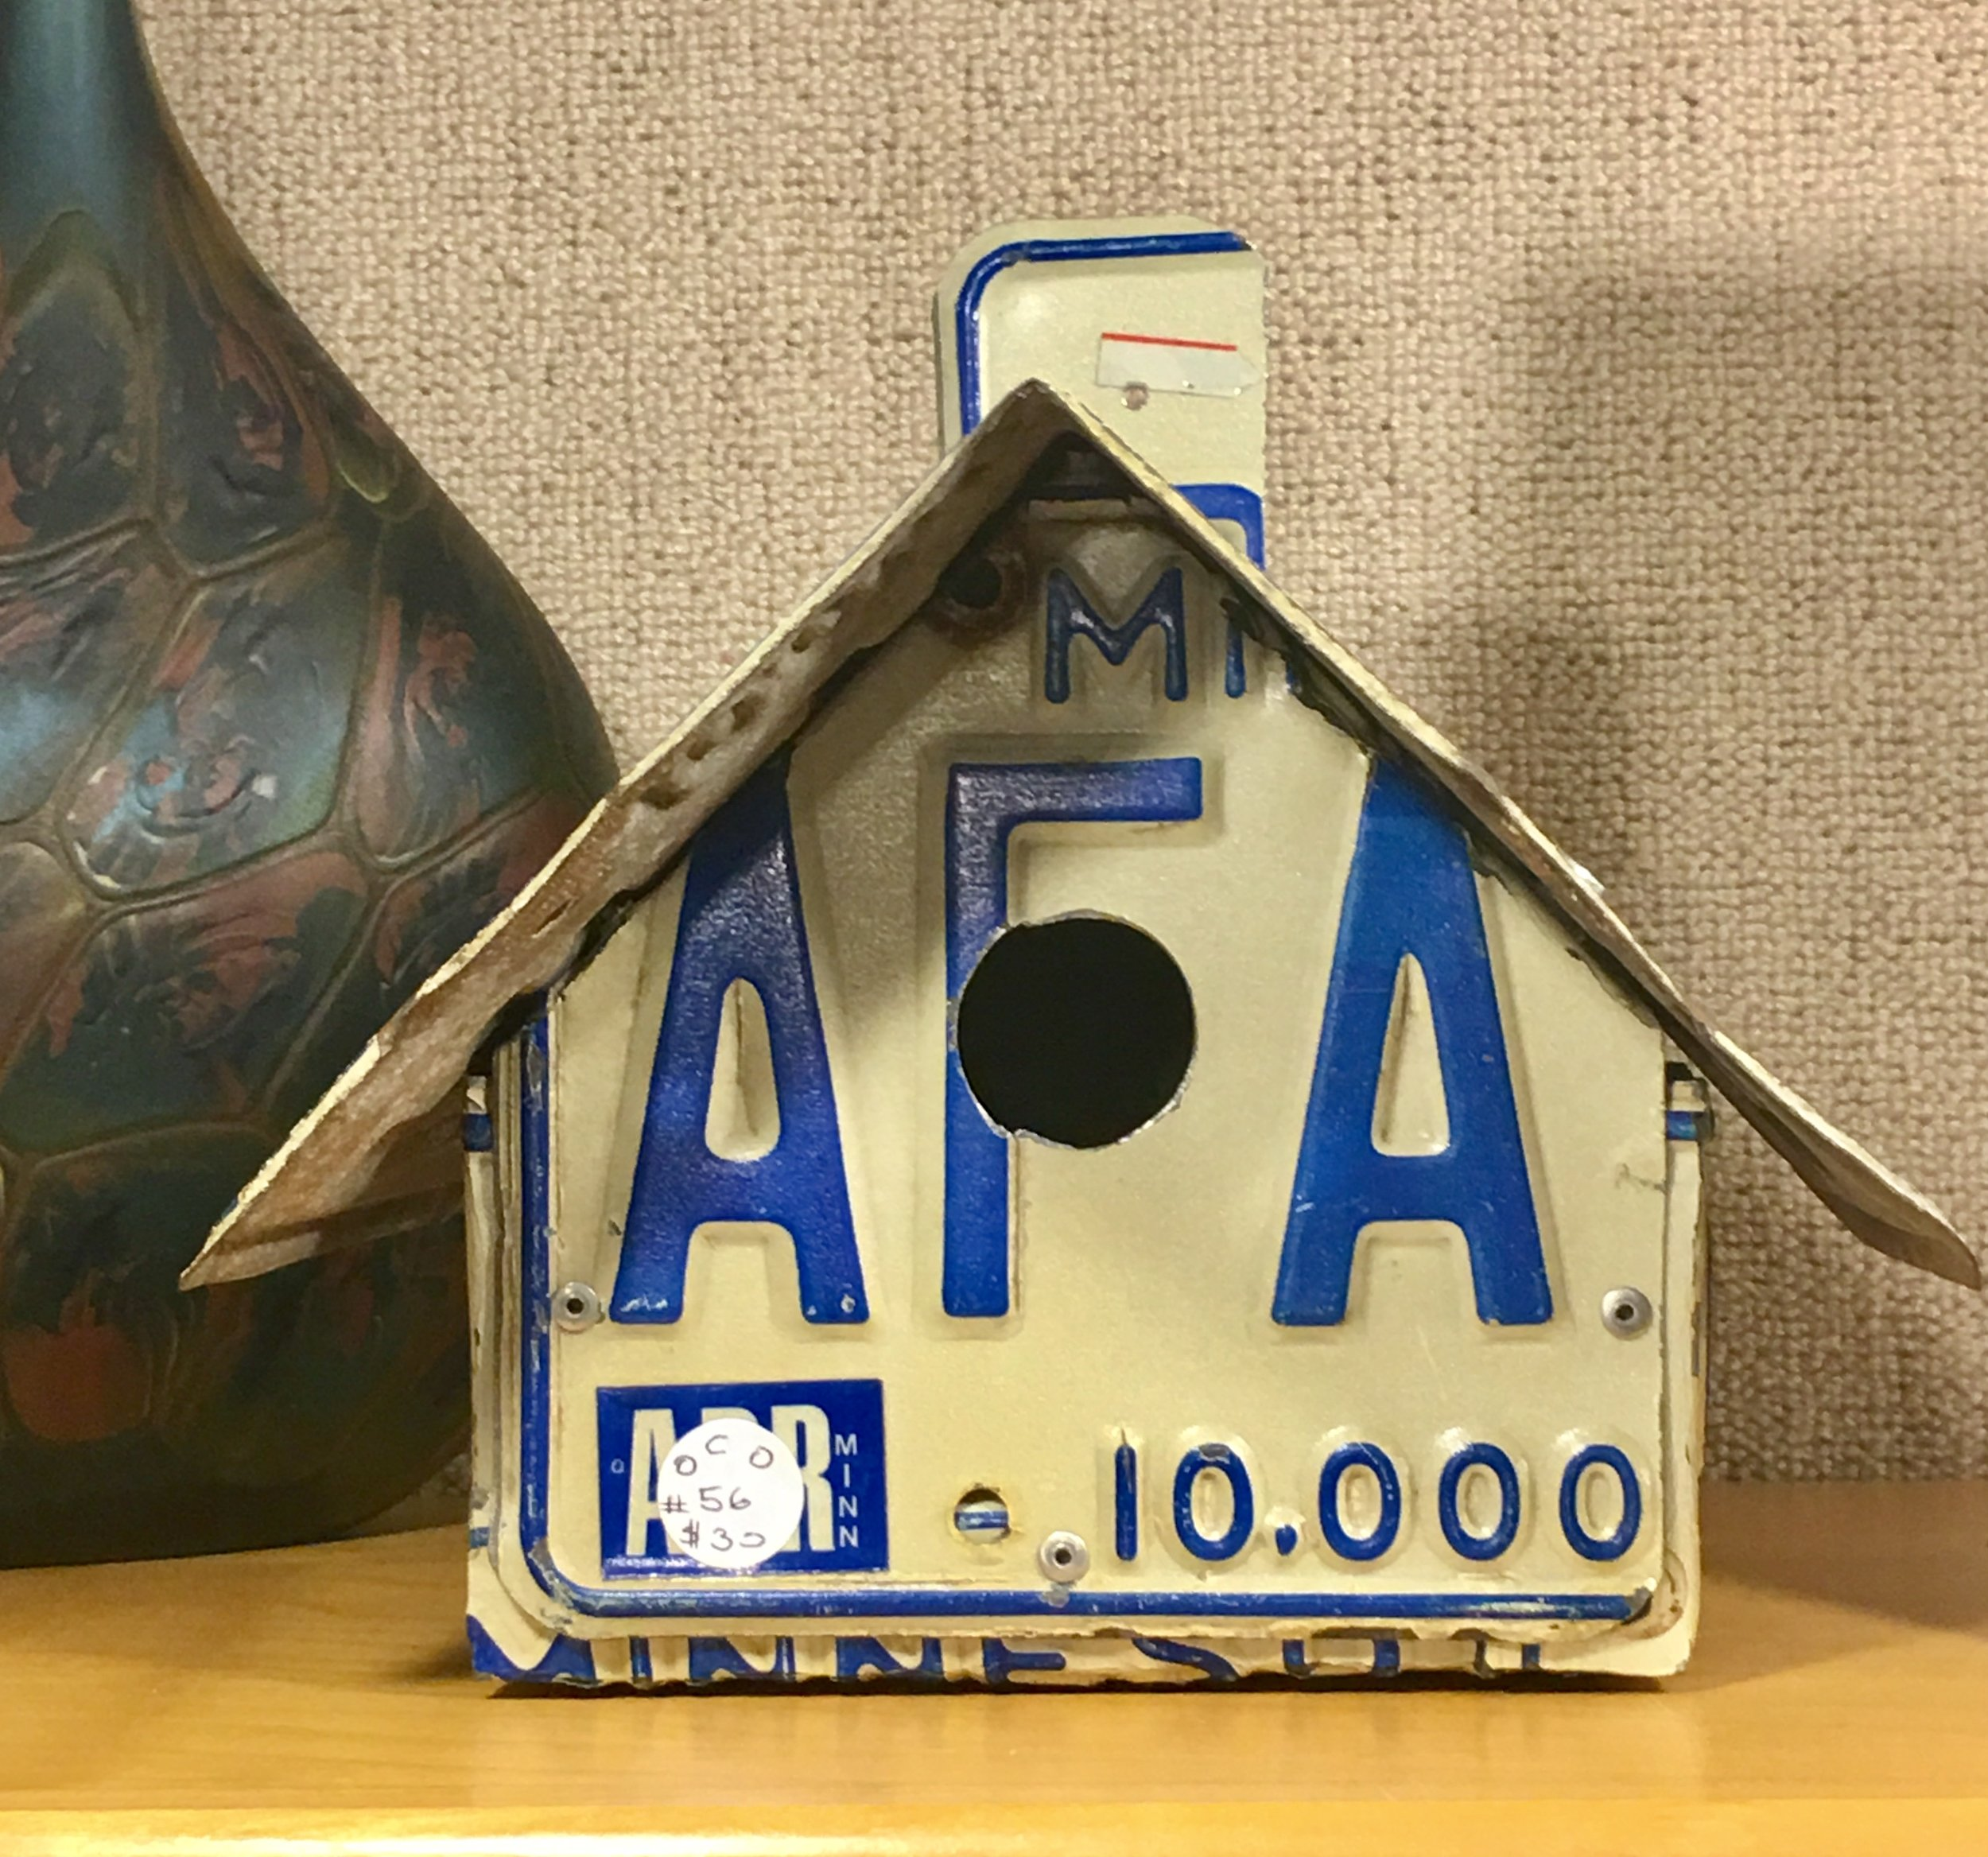 A wren house made from license plates.